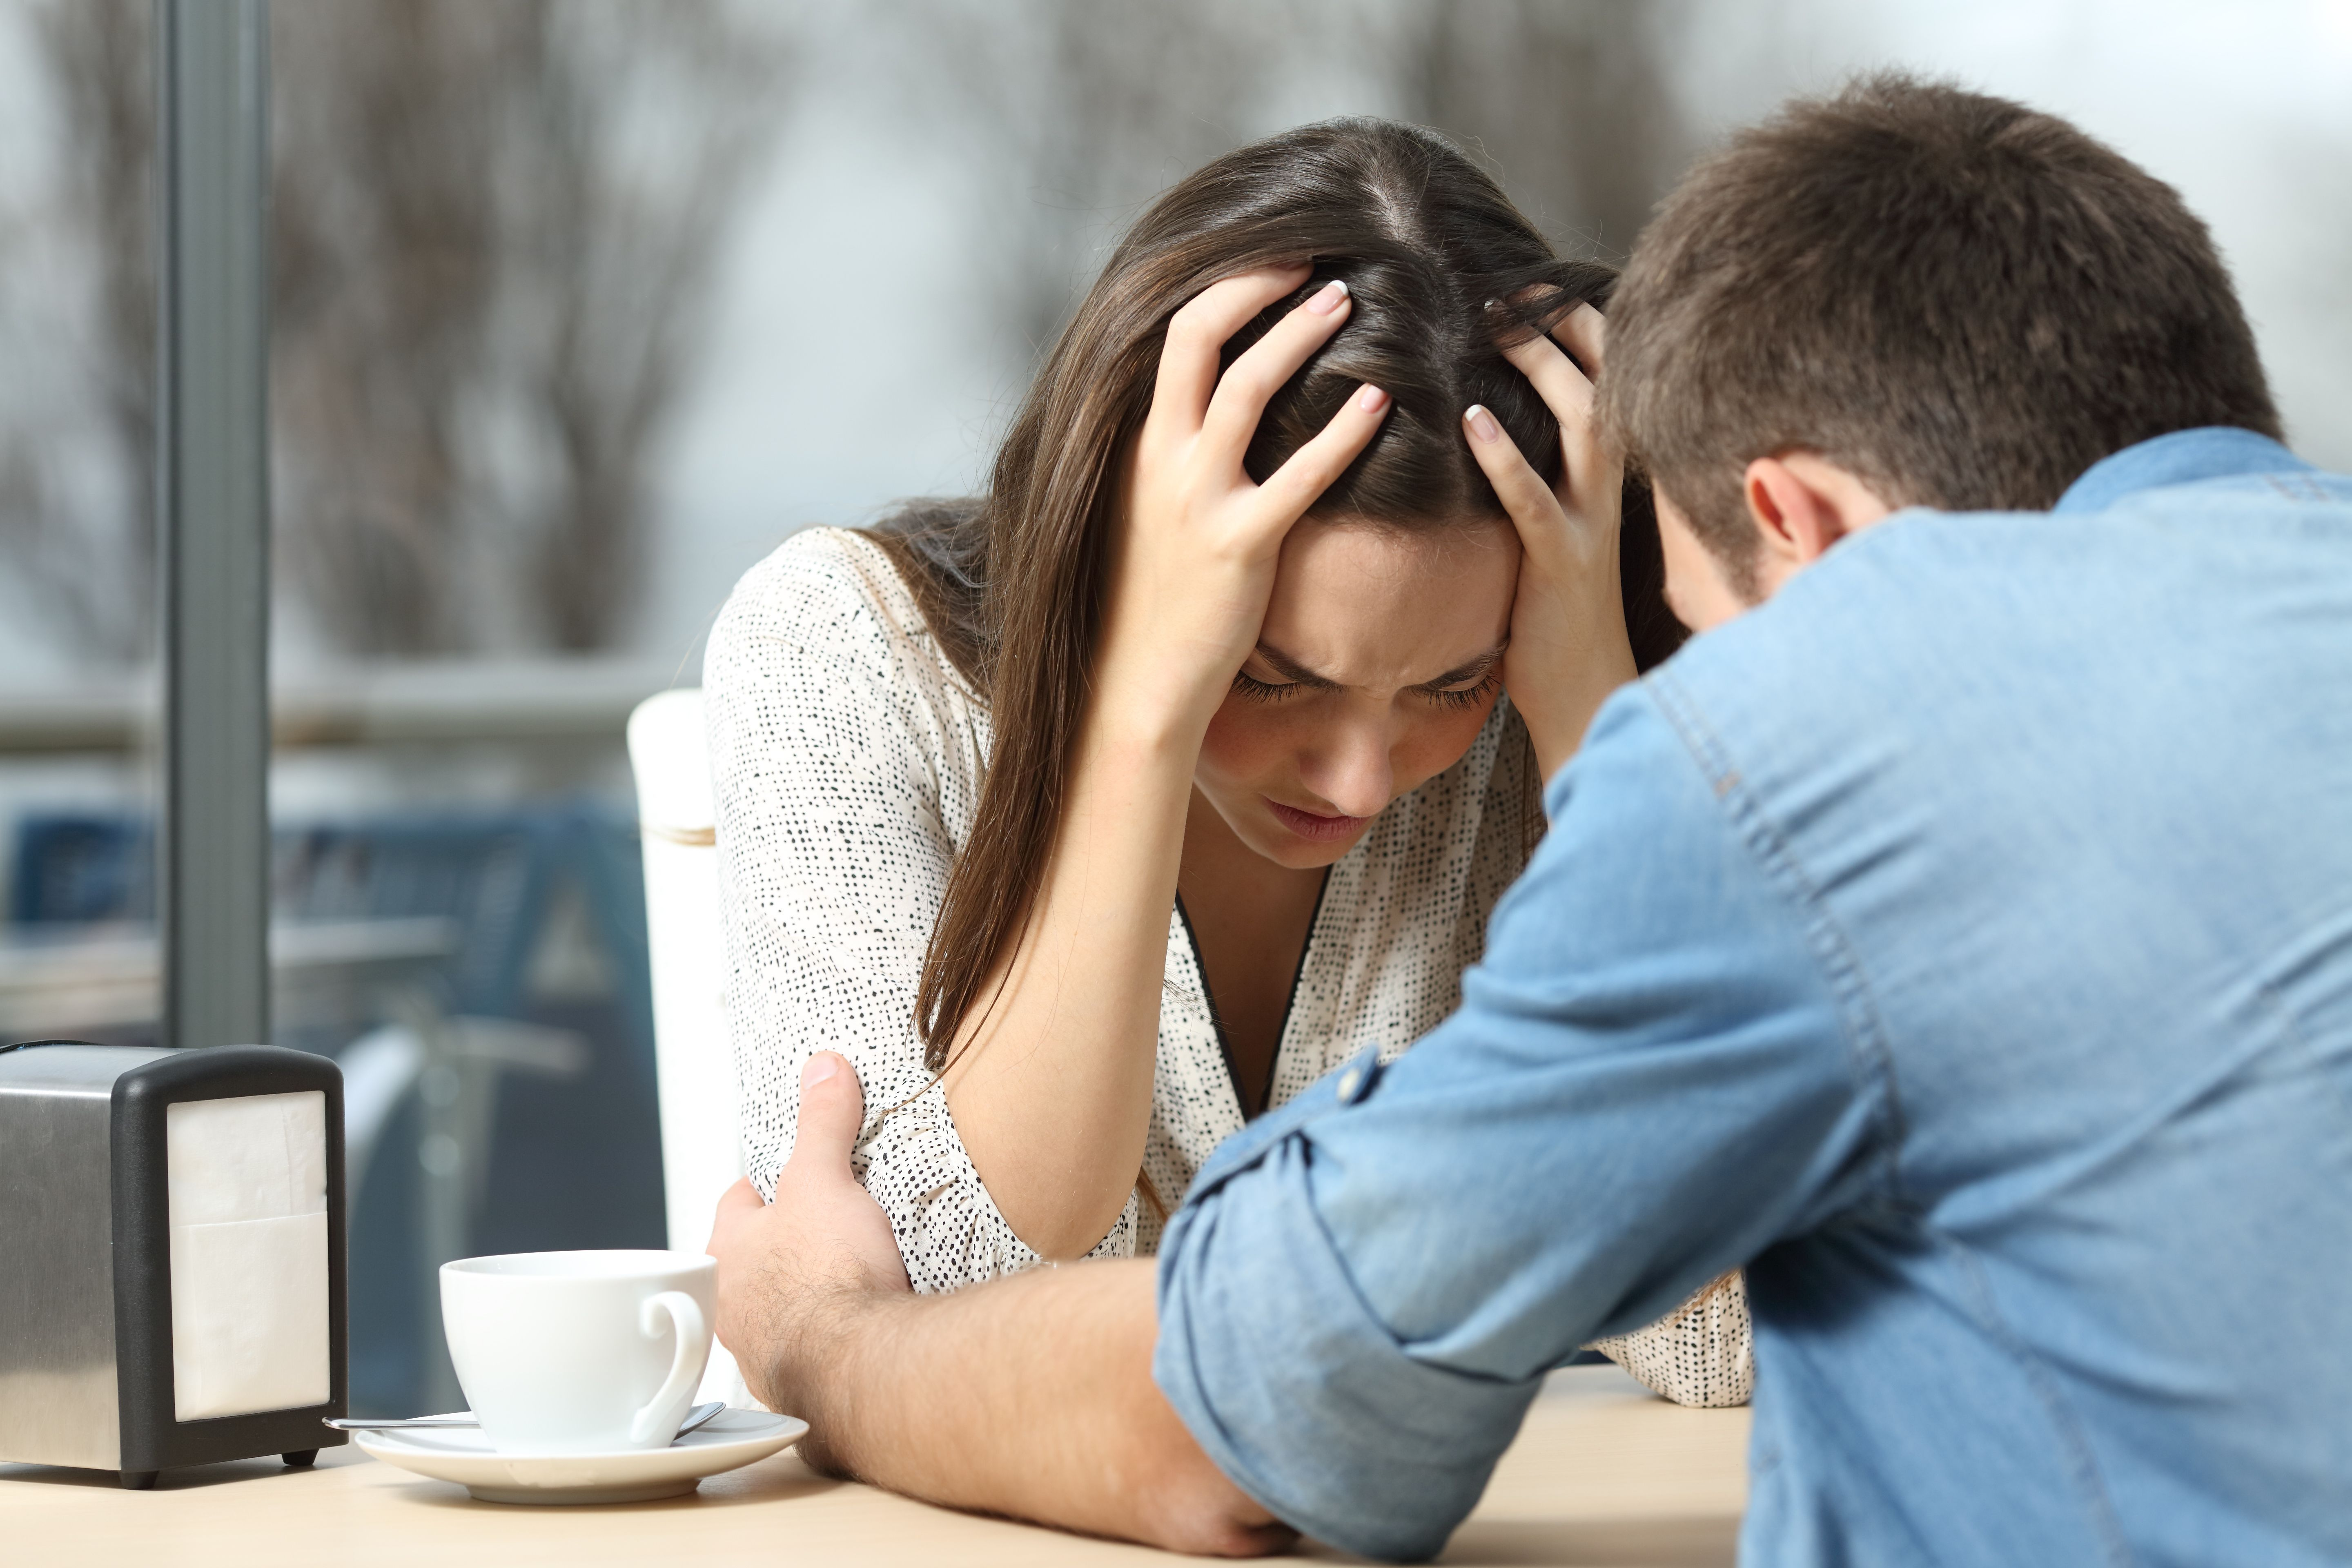 A man and woman talking.   Source: Shutterstock